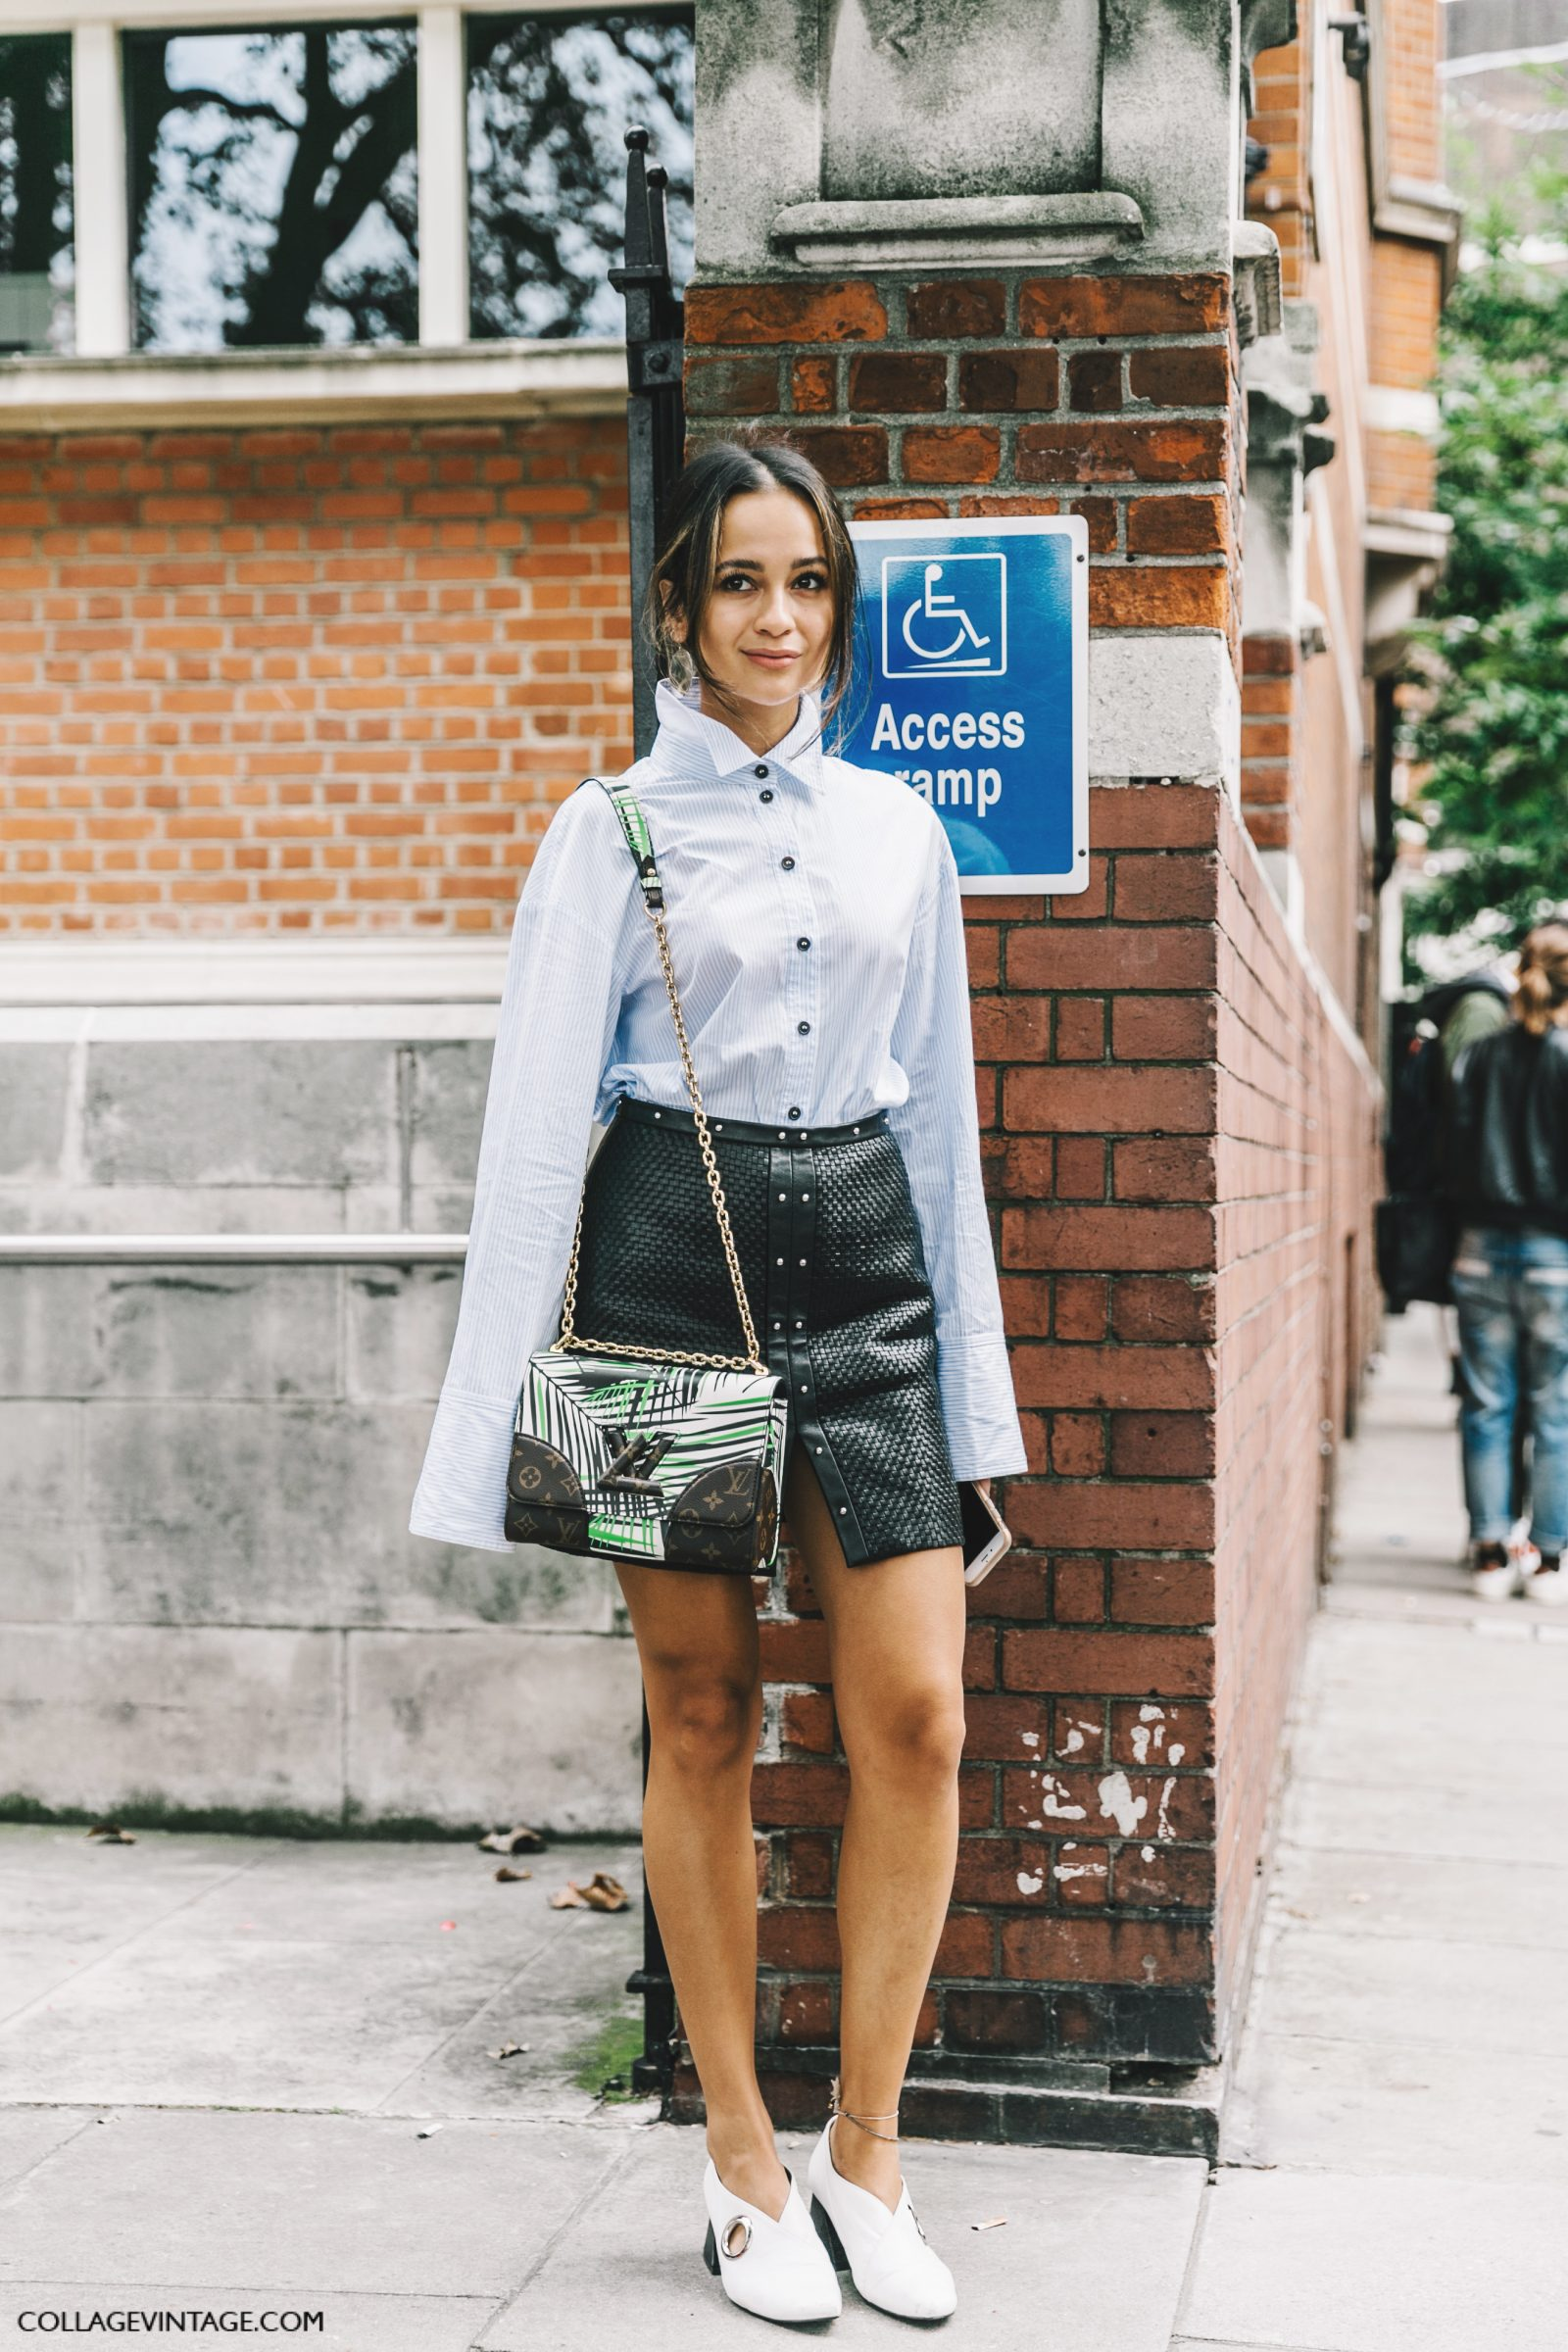 lfw-london_fashion_week_ss17-street_style-outfits-collage_vintage-vintage-topshop_unique-anya-mulberry-preen-21